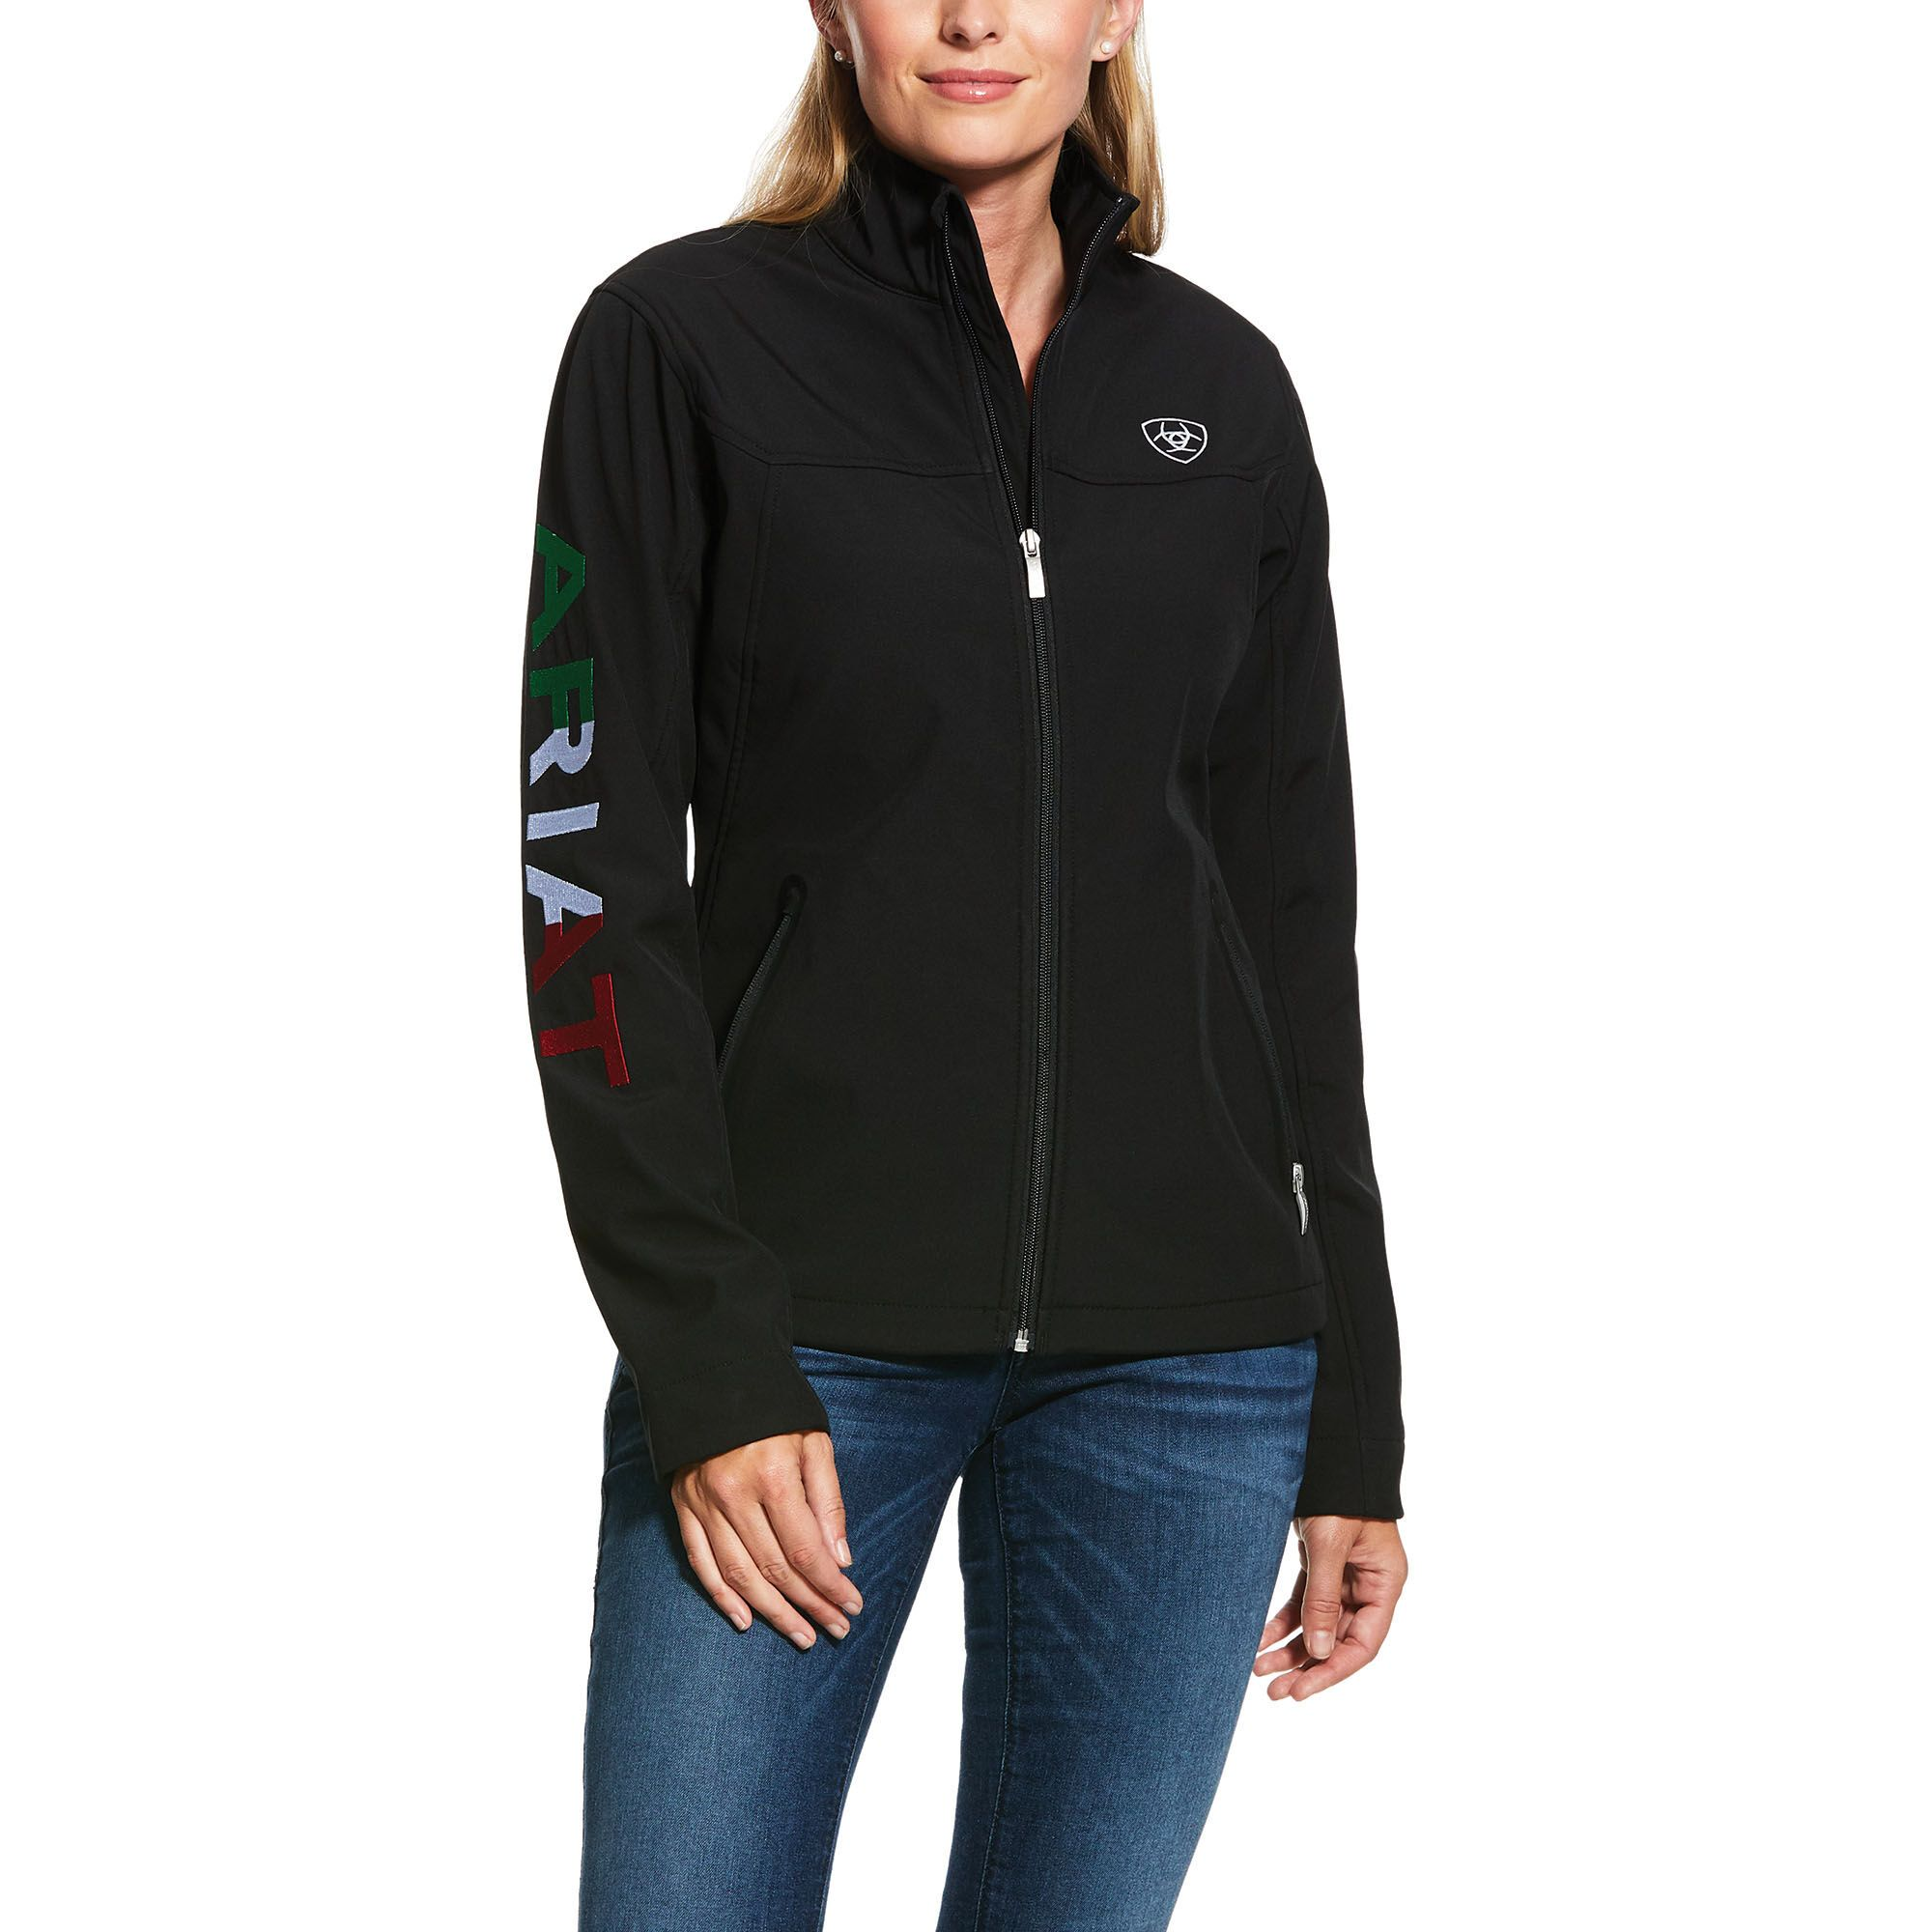 Classic Team Mexico Softshell Water Resistant Jacket Water Resistant Jacket Soft Shell Jacket Jacket Style [ 2000 x 2000 Pixel ]